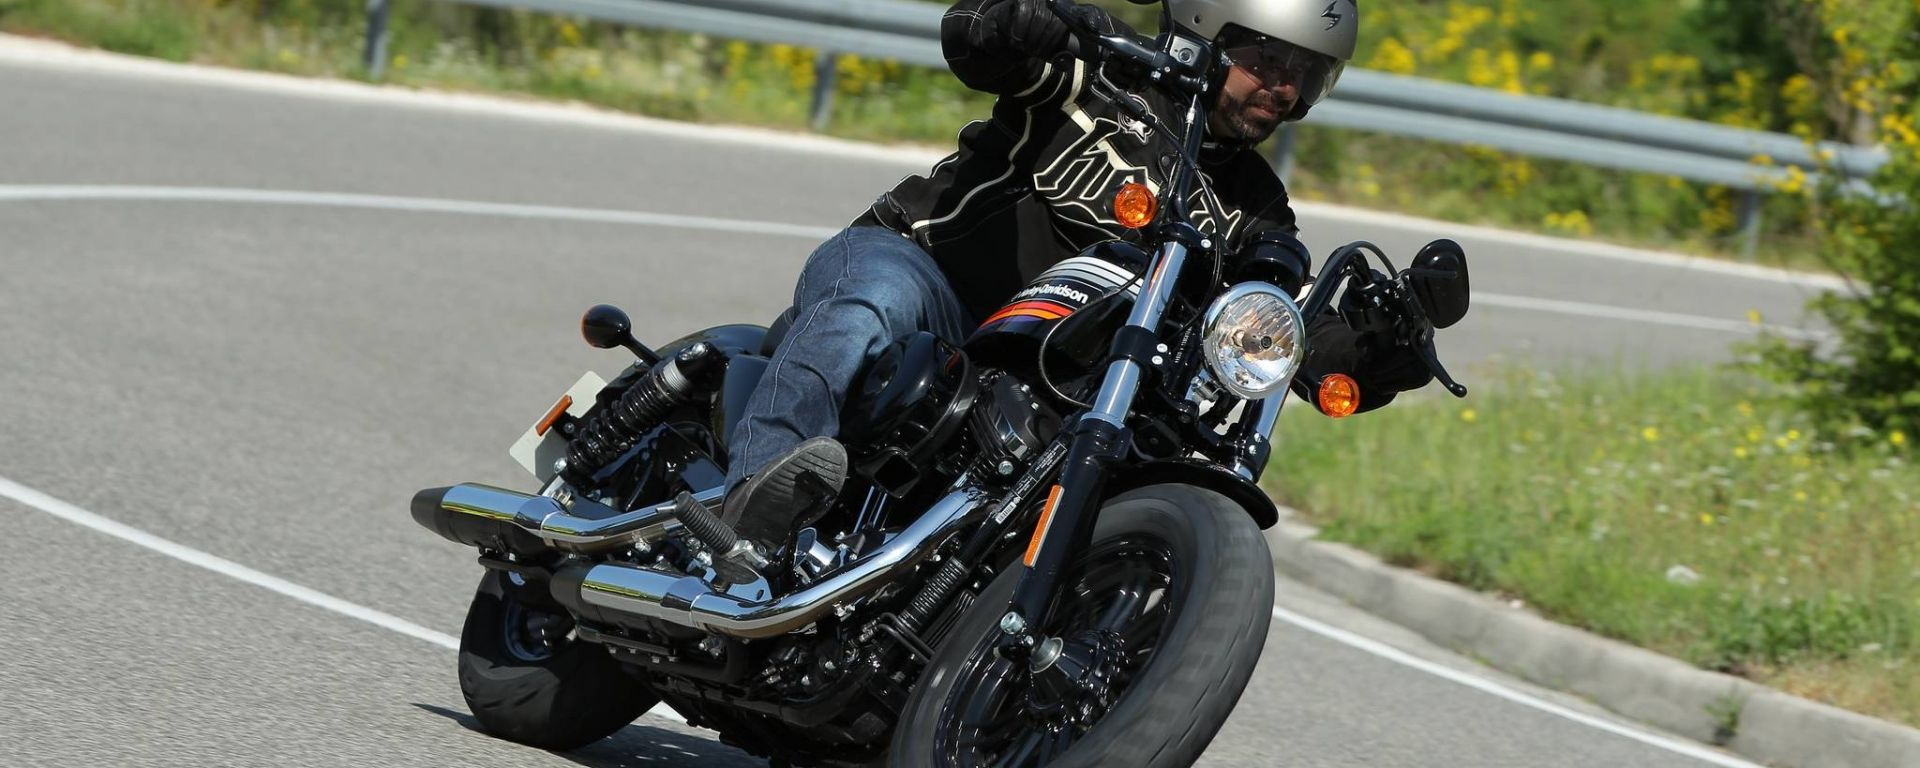 Harley Davidson: Harley-Davidson Sportster Iron 1200 E Forty-Eight Special